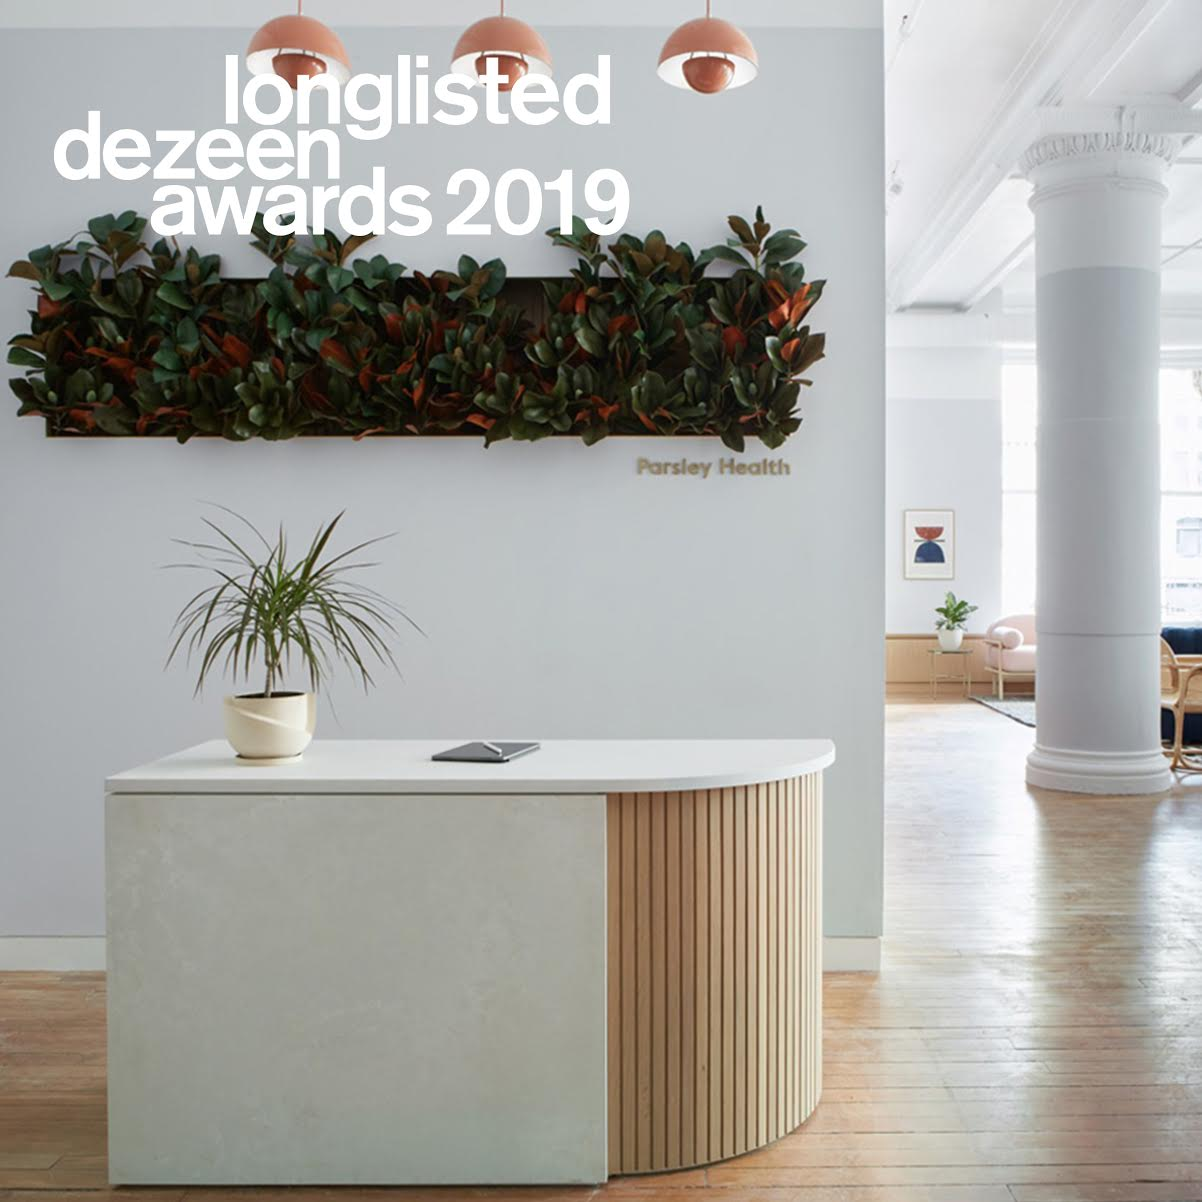 Parsley Health has been longlisted for the Dezeen Awards